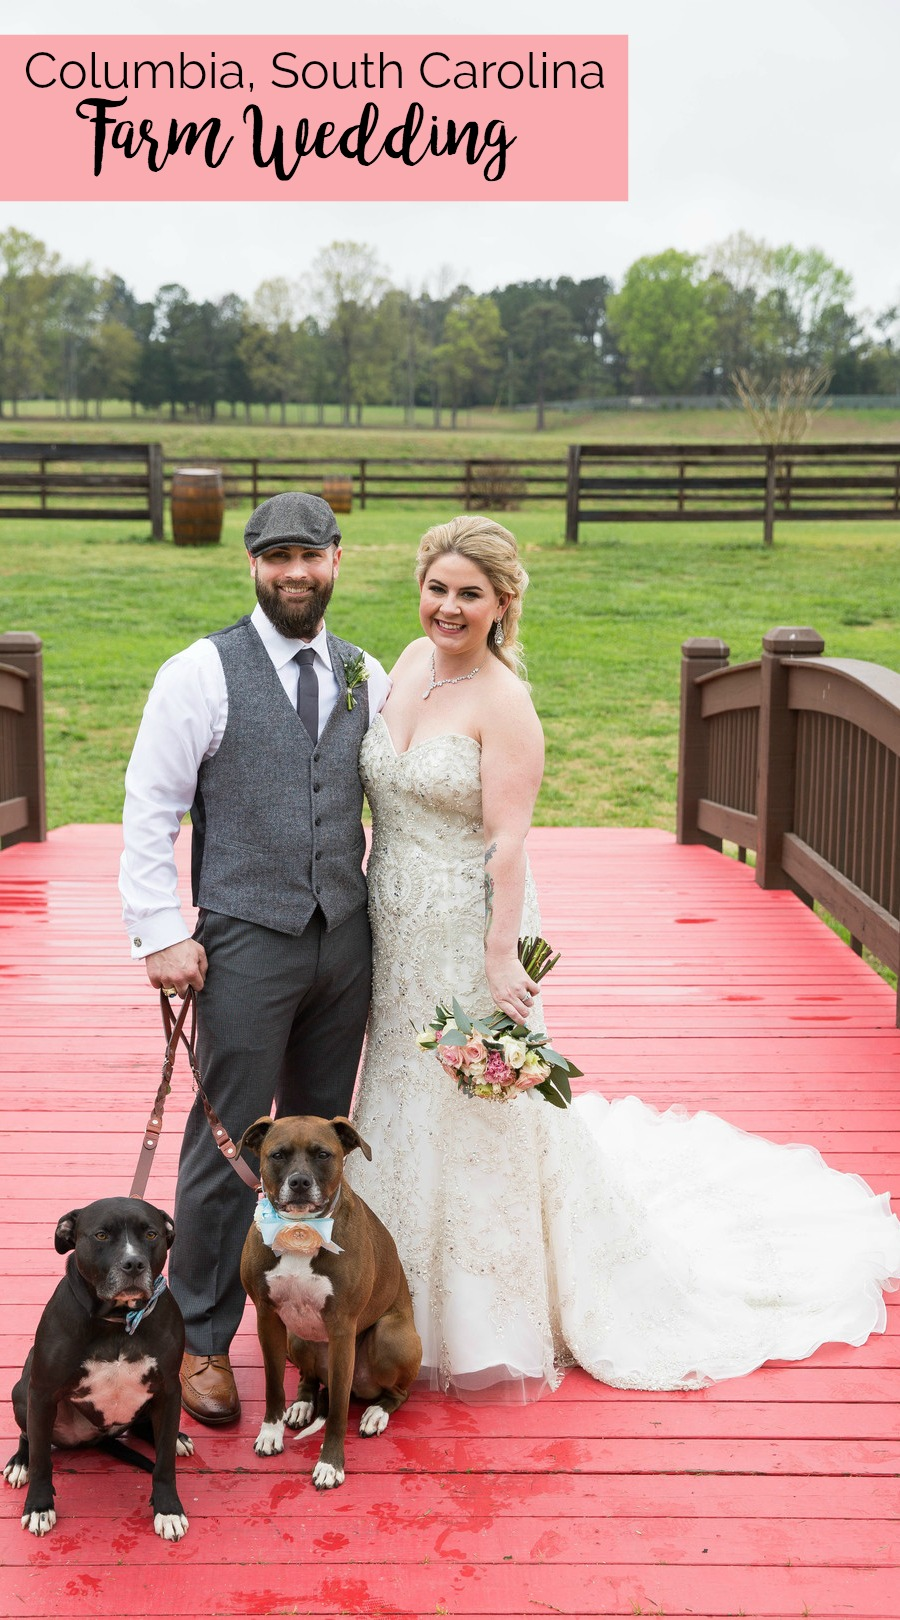 Ashley and Cody: Upbeat Wedding at the Farm at Ridgeway, Ridgeway, South Carolina | Palmetto State Weddings | Nikki Morgan Photography | Columbia SC wedding